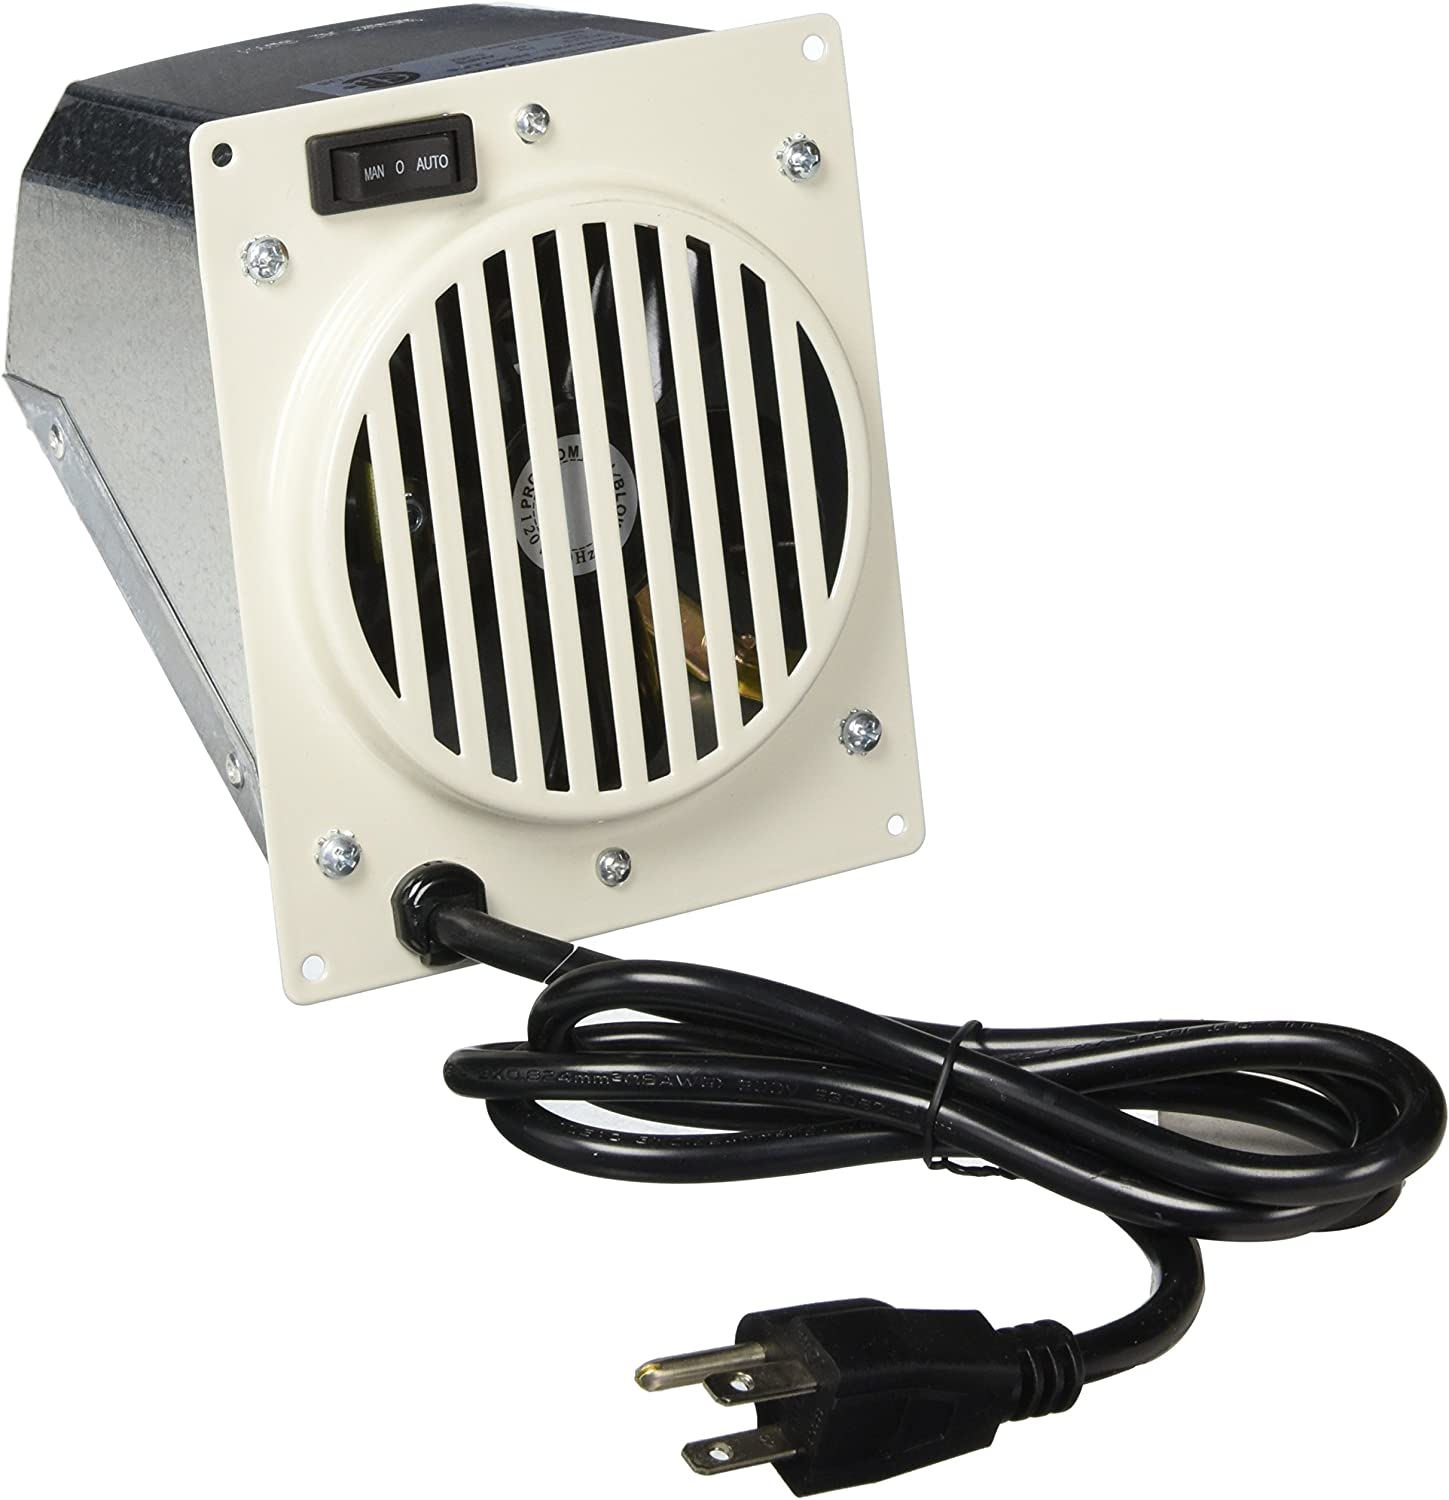 Mail order ProCom Heating Inc TV209325 40% OFF Cheap Sale Heater White Blower Wall